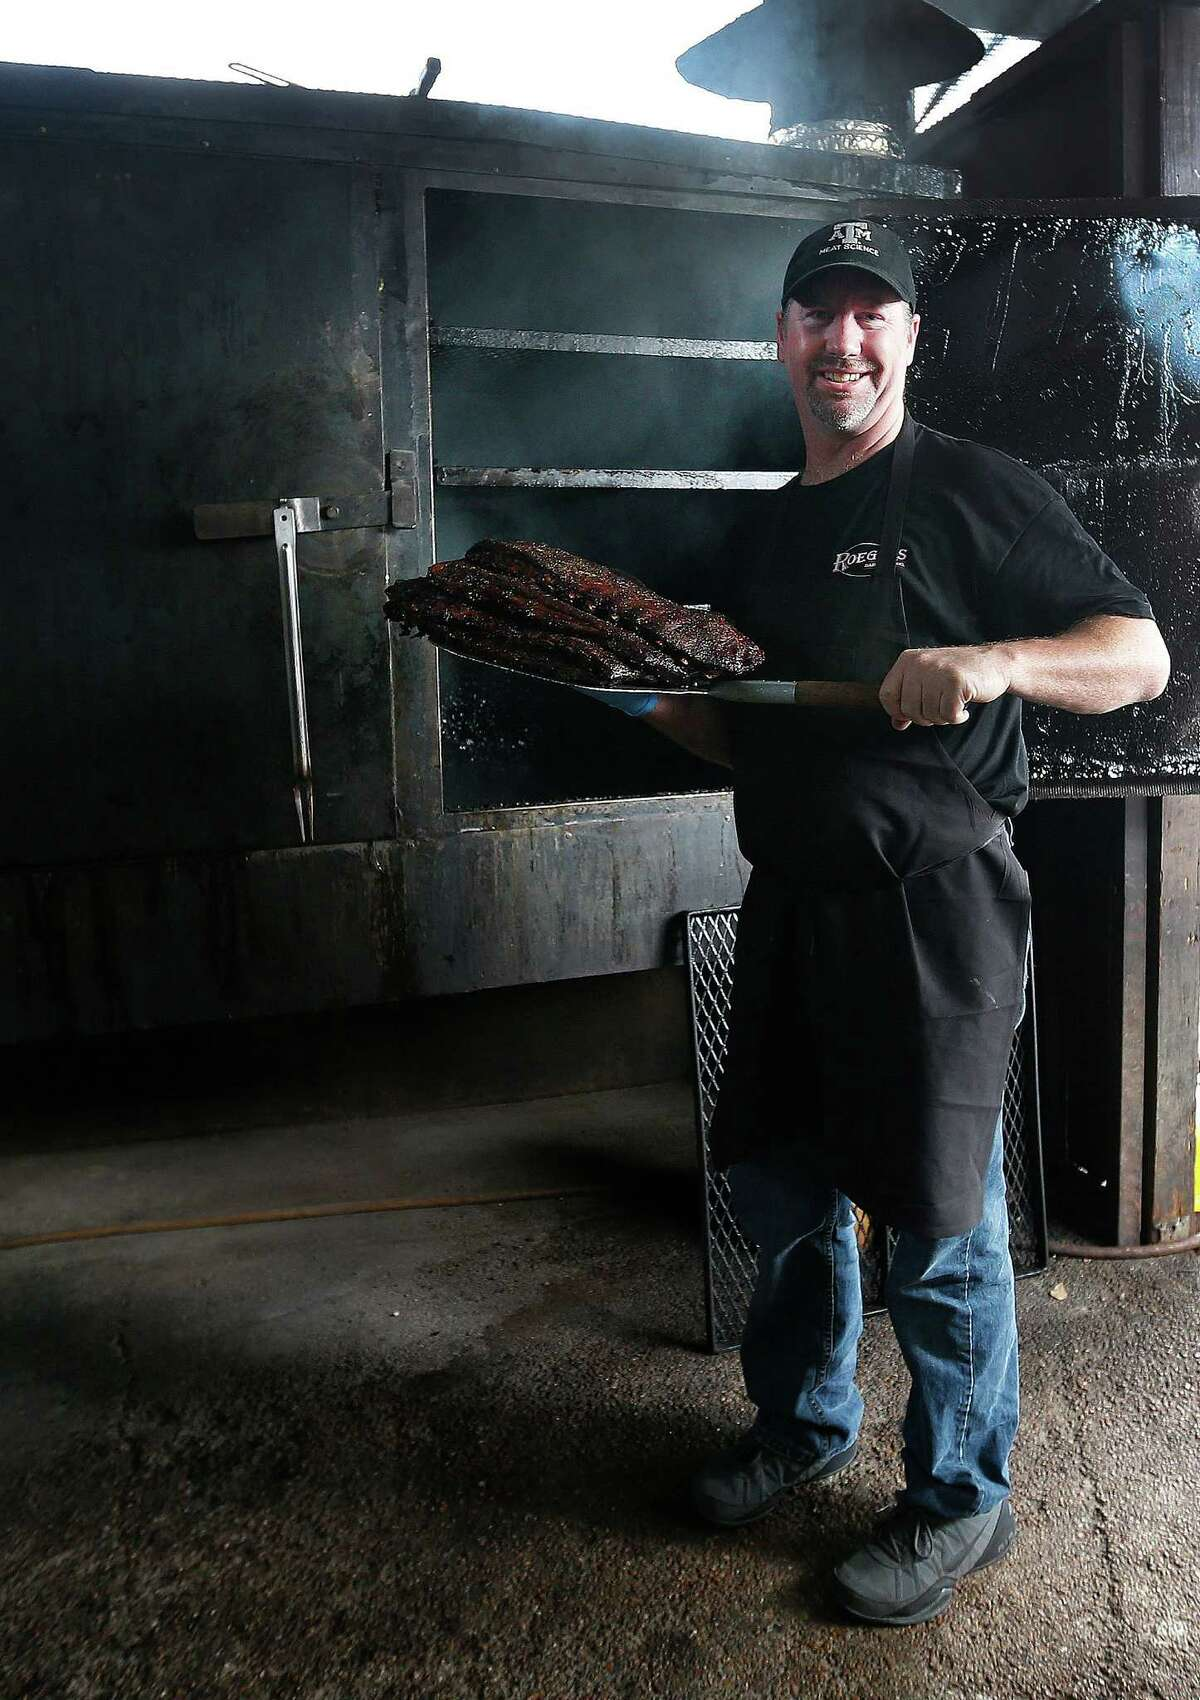 Russel Roegels pulls ribs out of his pits at Roegels Barbecue Co. on Voss, Thursday, April 16, 2015, in Houston. ( Karen Warren / Houston Chronicle )